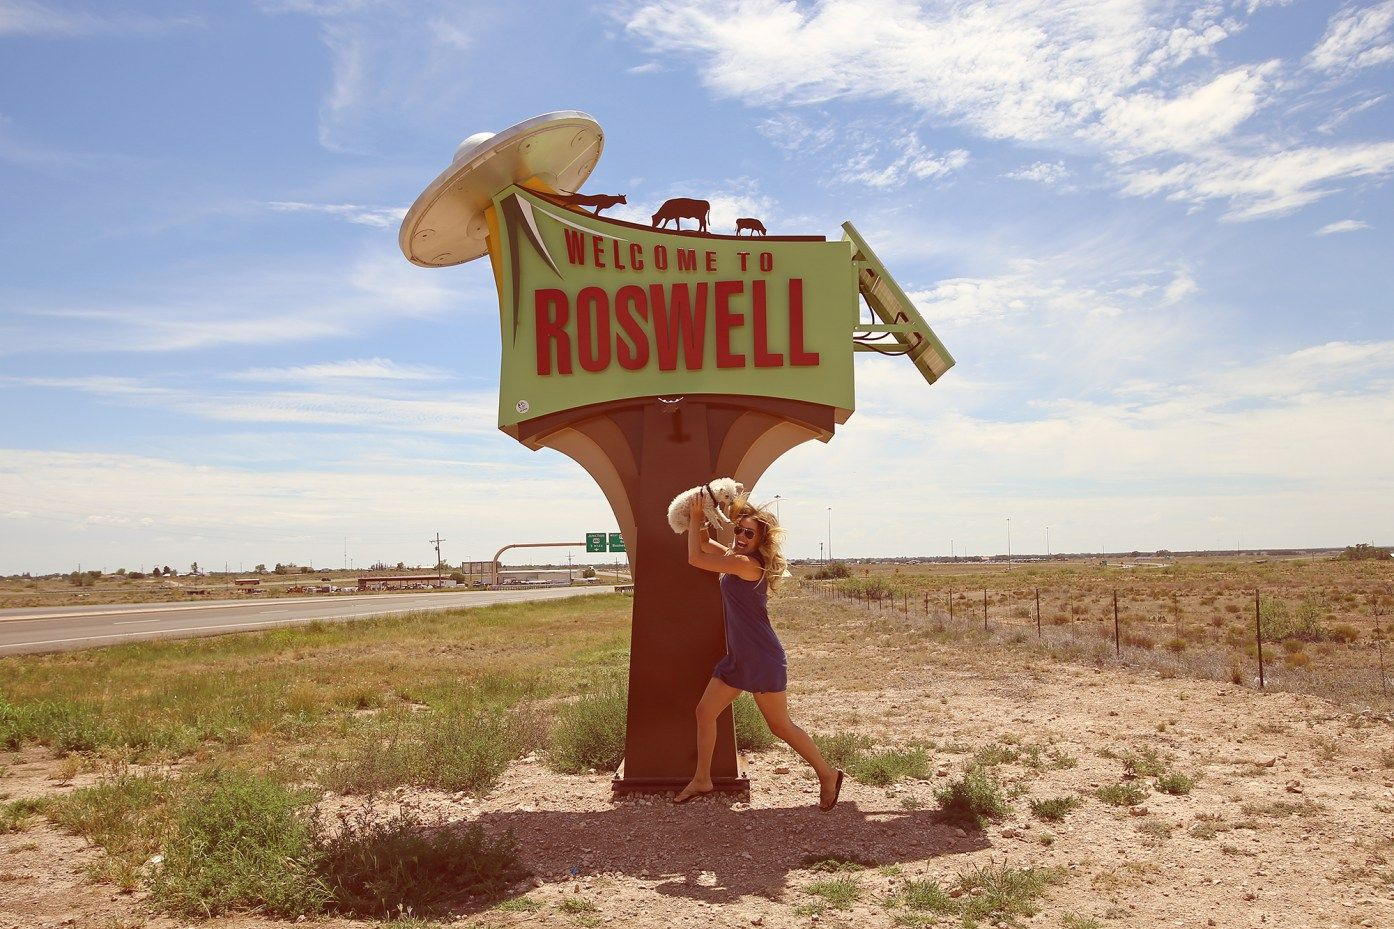 Roswell New Mexico Mavis The Airstream Roswell New Mexico New Mexico Roswell